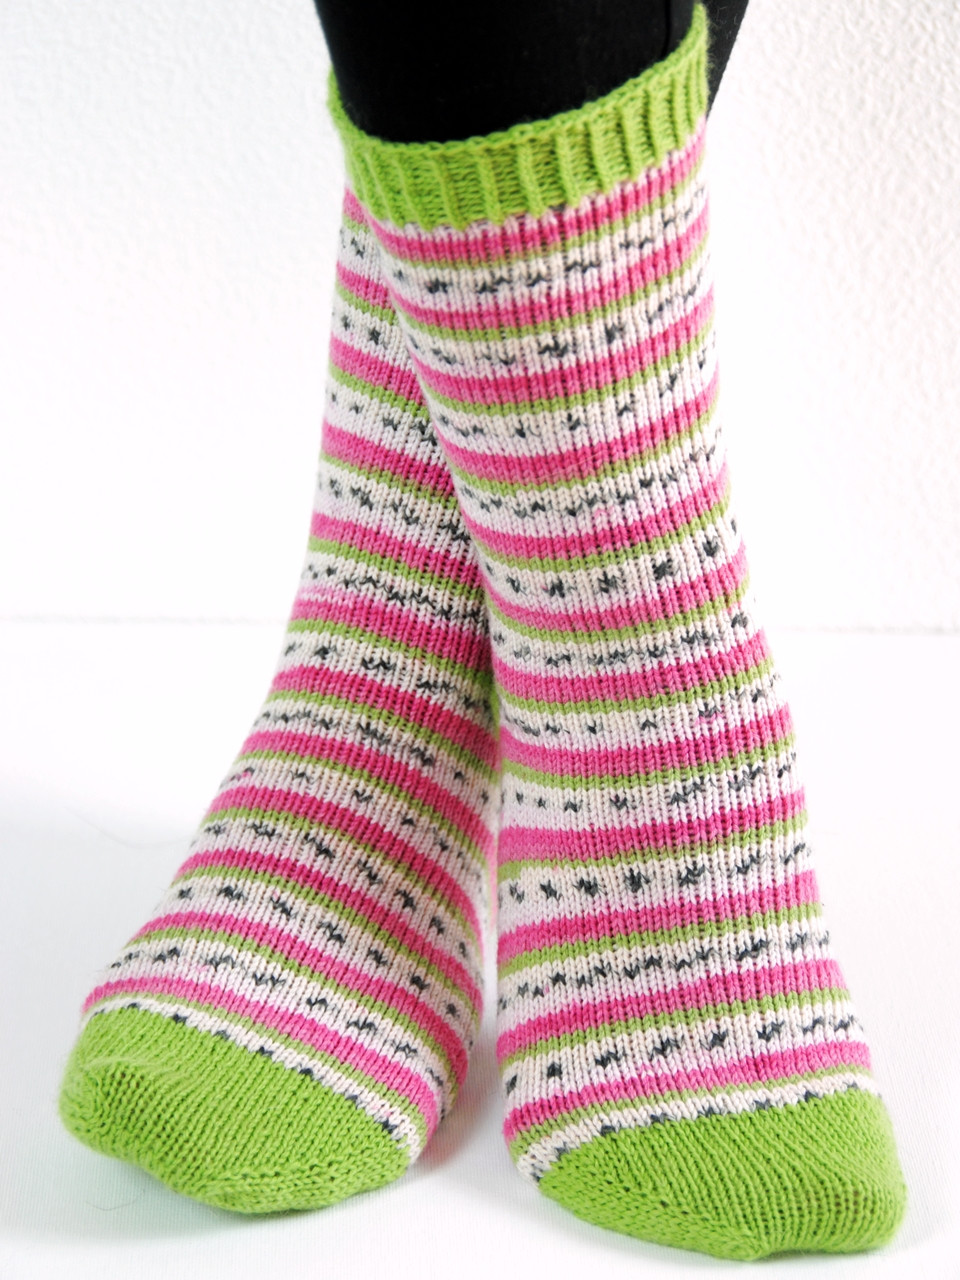 Dragonfruit toe-up socks with an improved afterthought heel